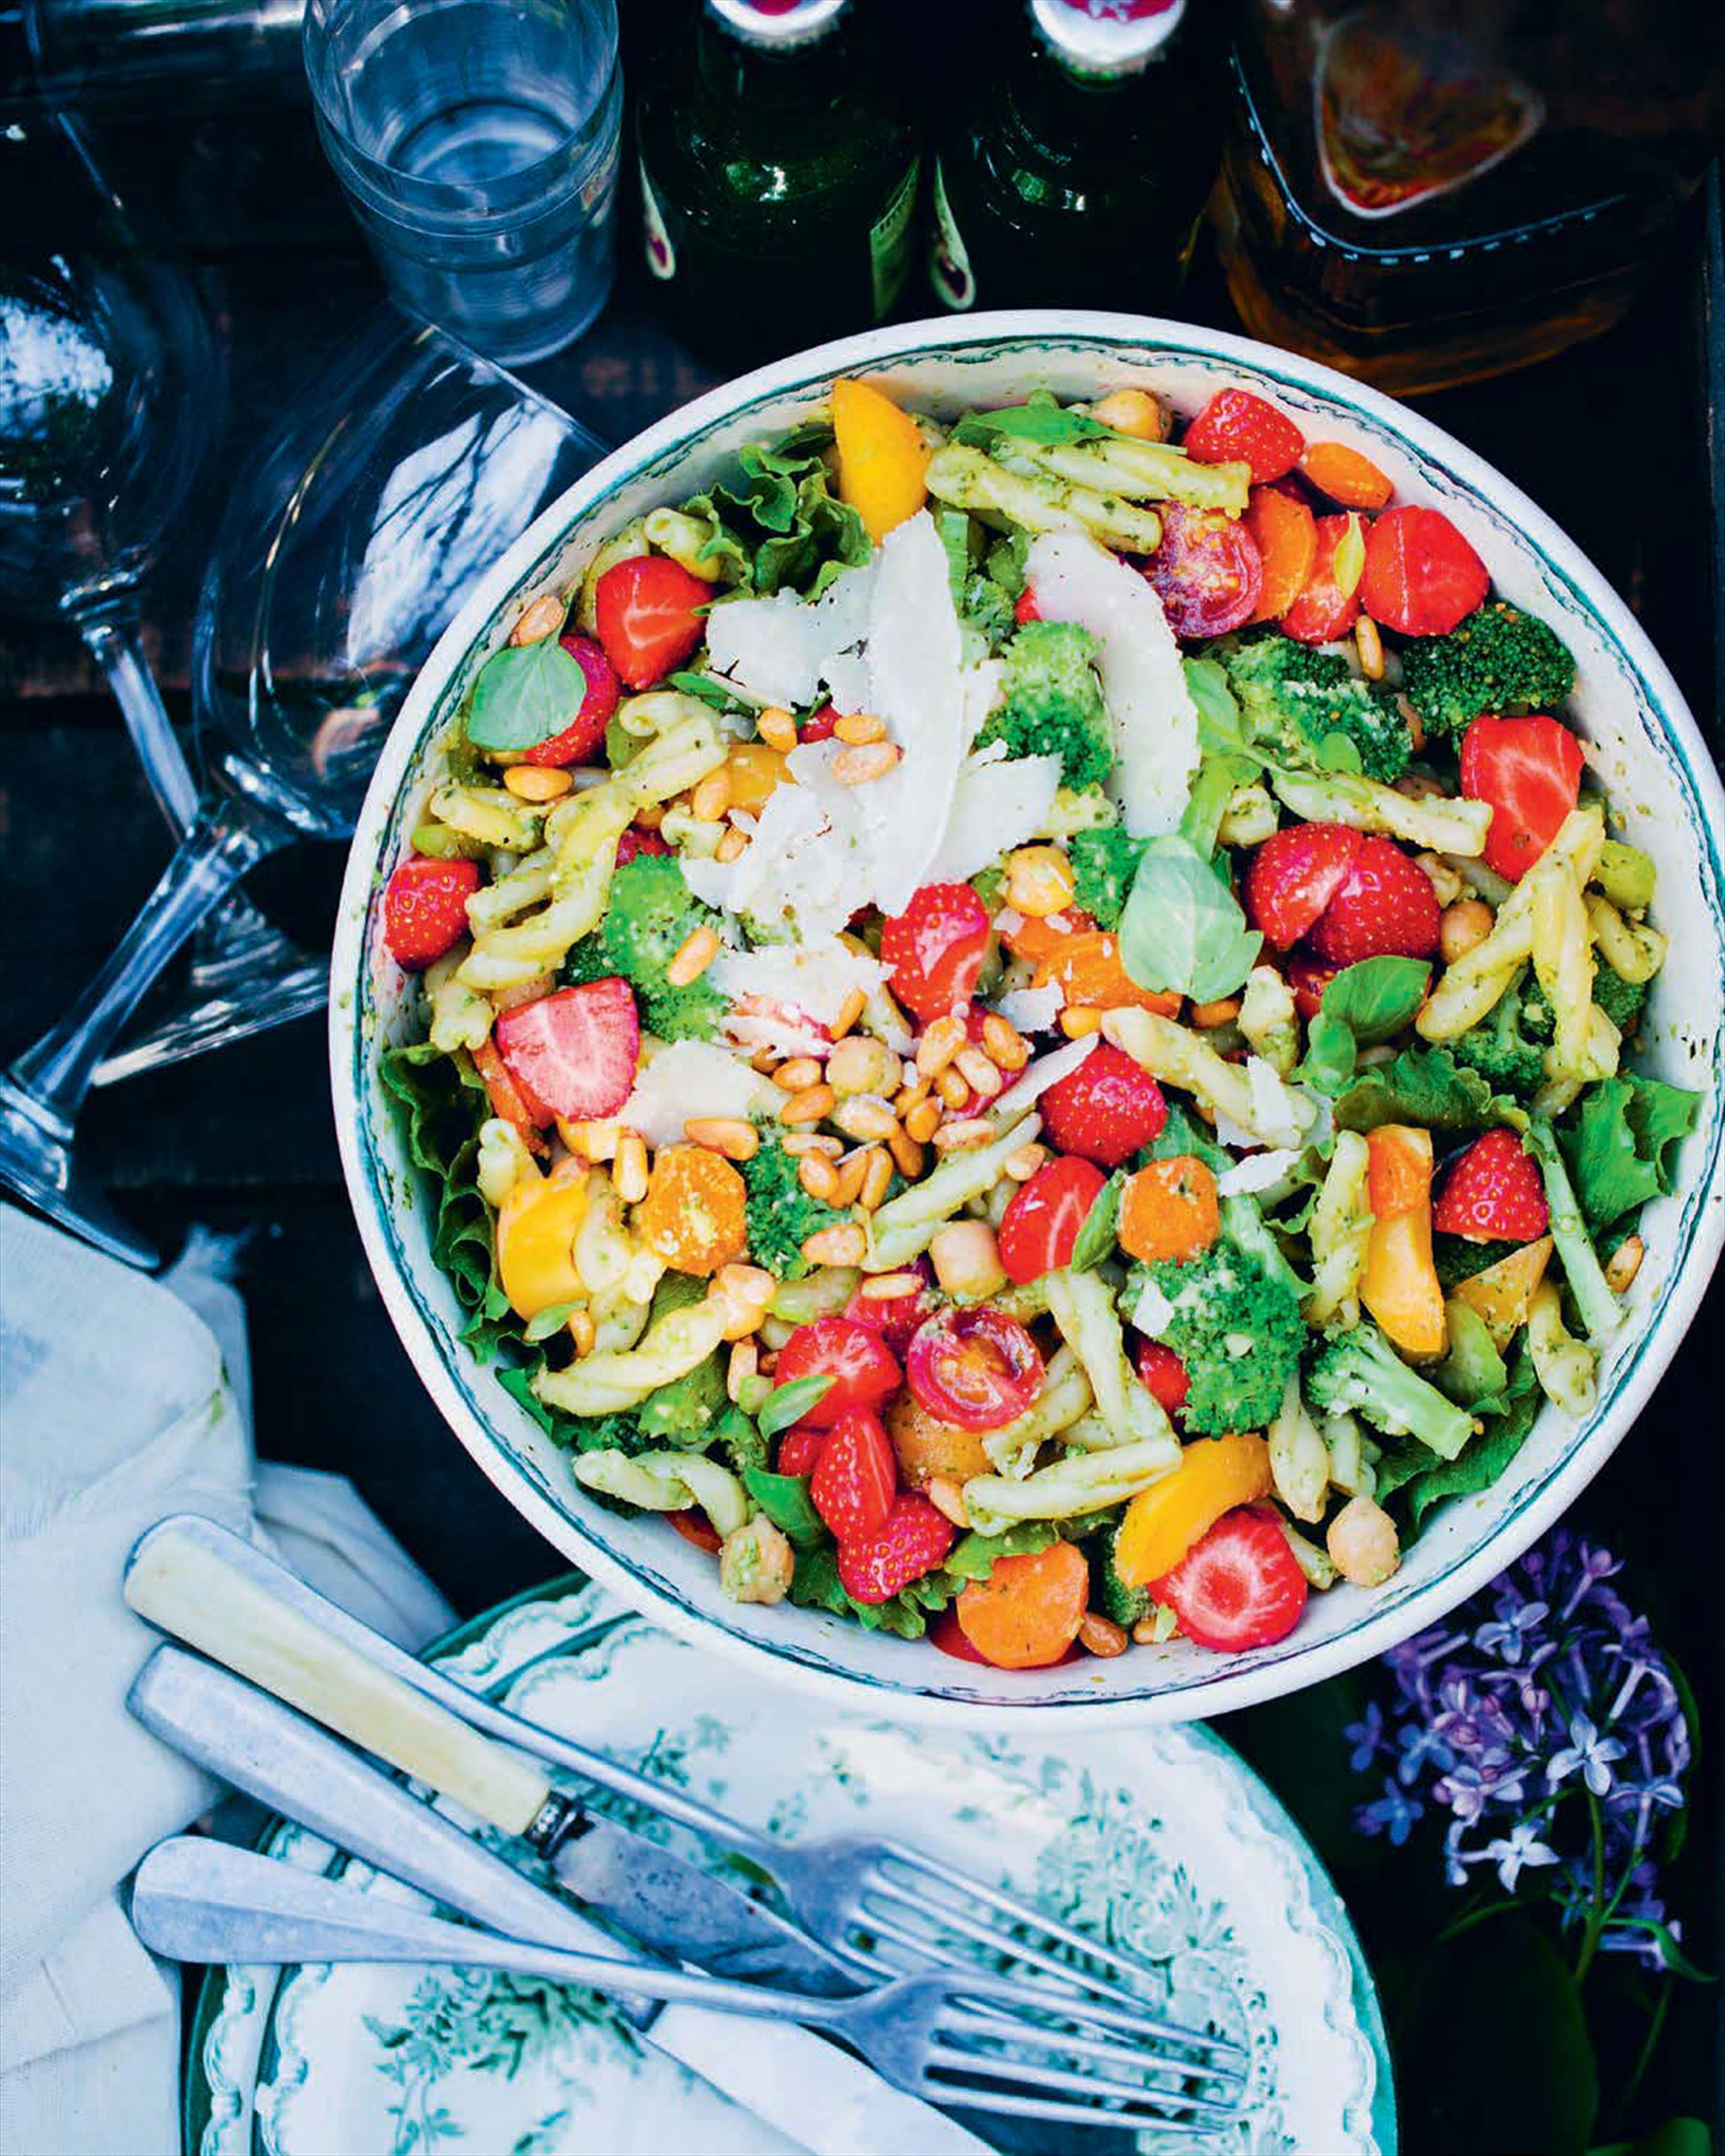 Strawberry and pesto pasta salad